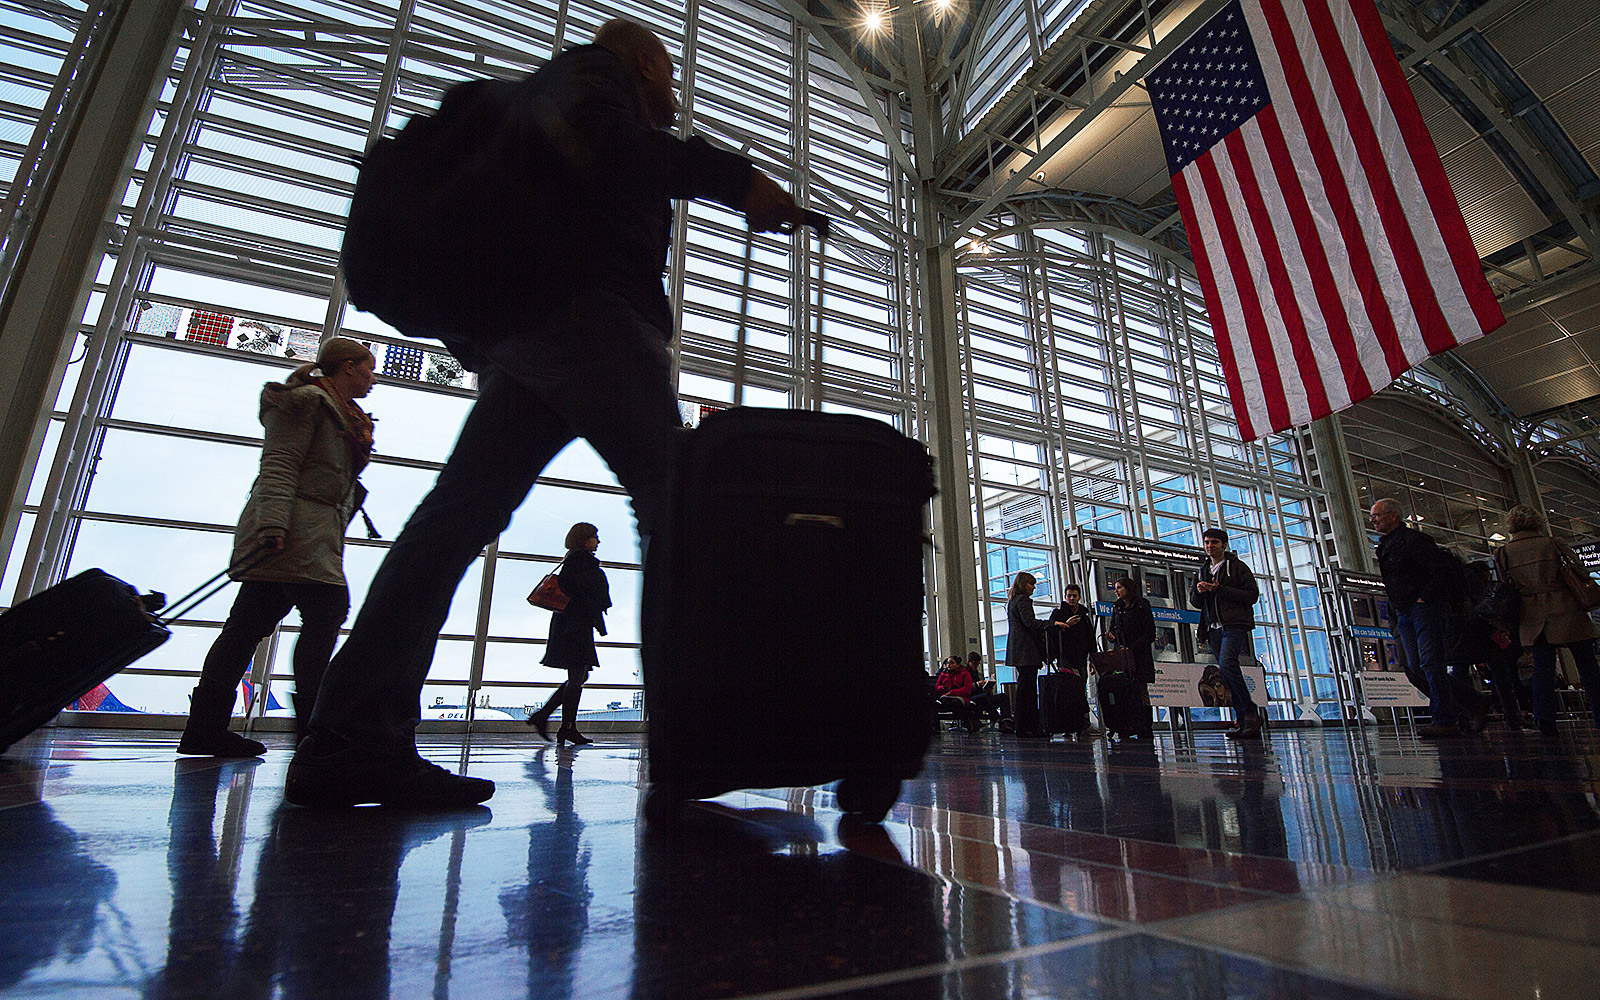 More Americans Are Traveling Abroad Than Ever Before